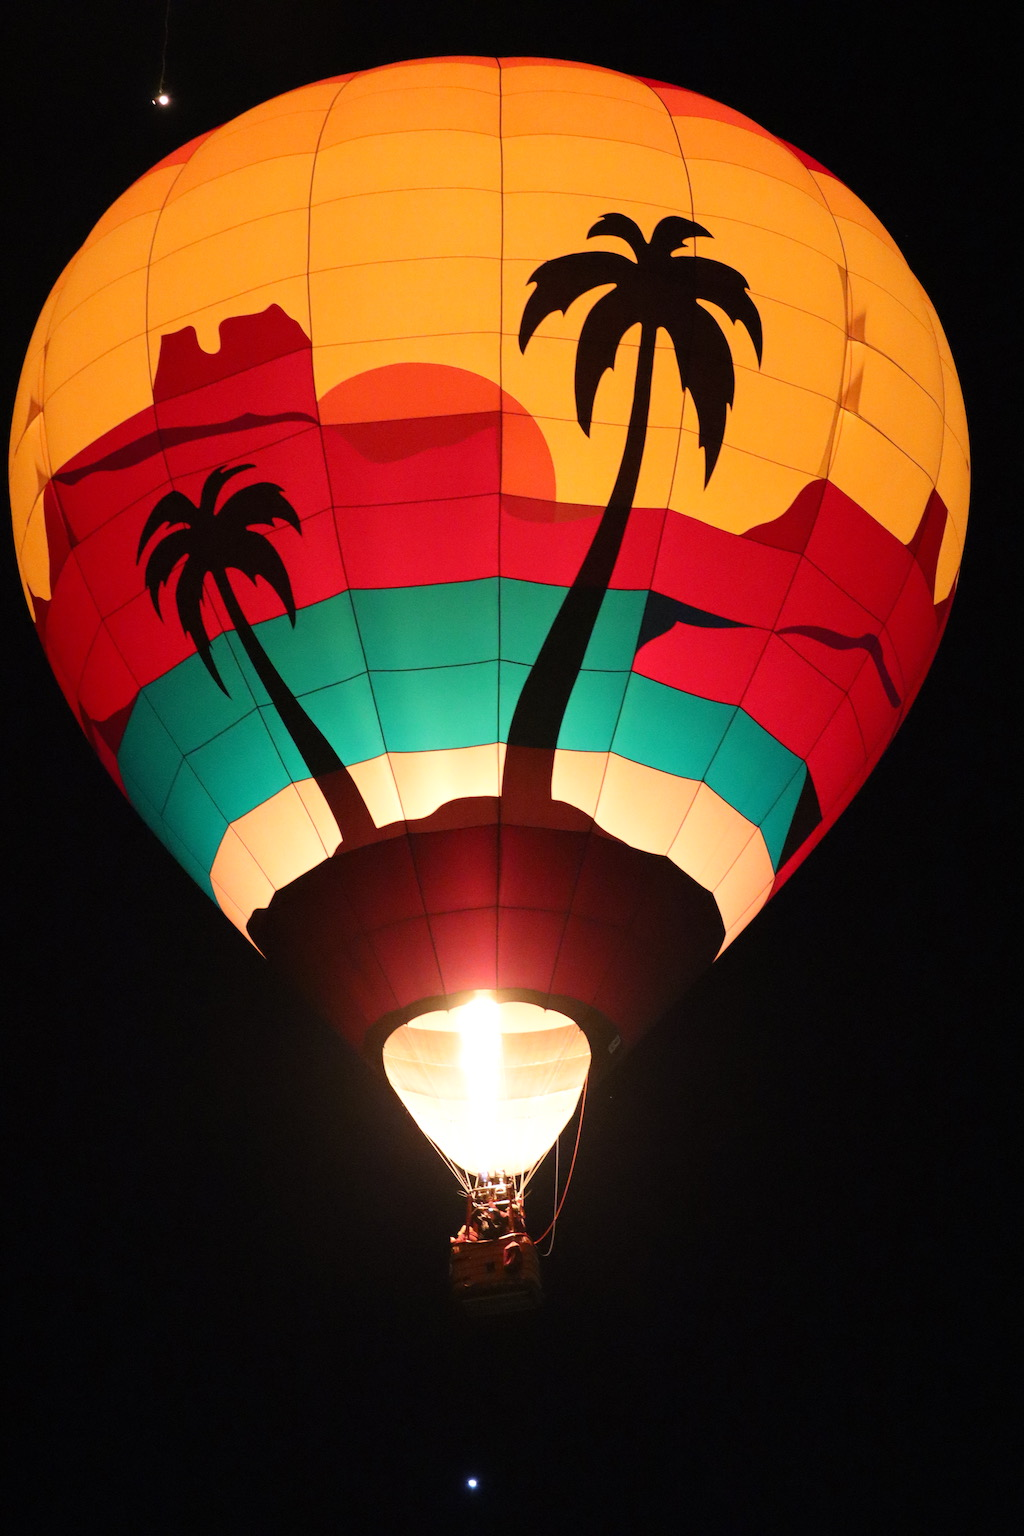 palm tree hot air balloon